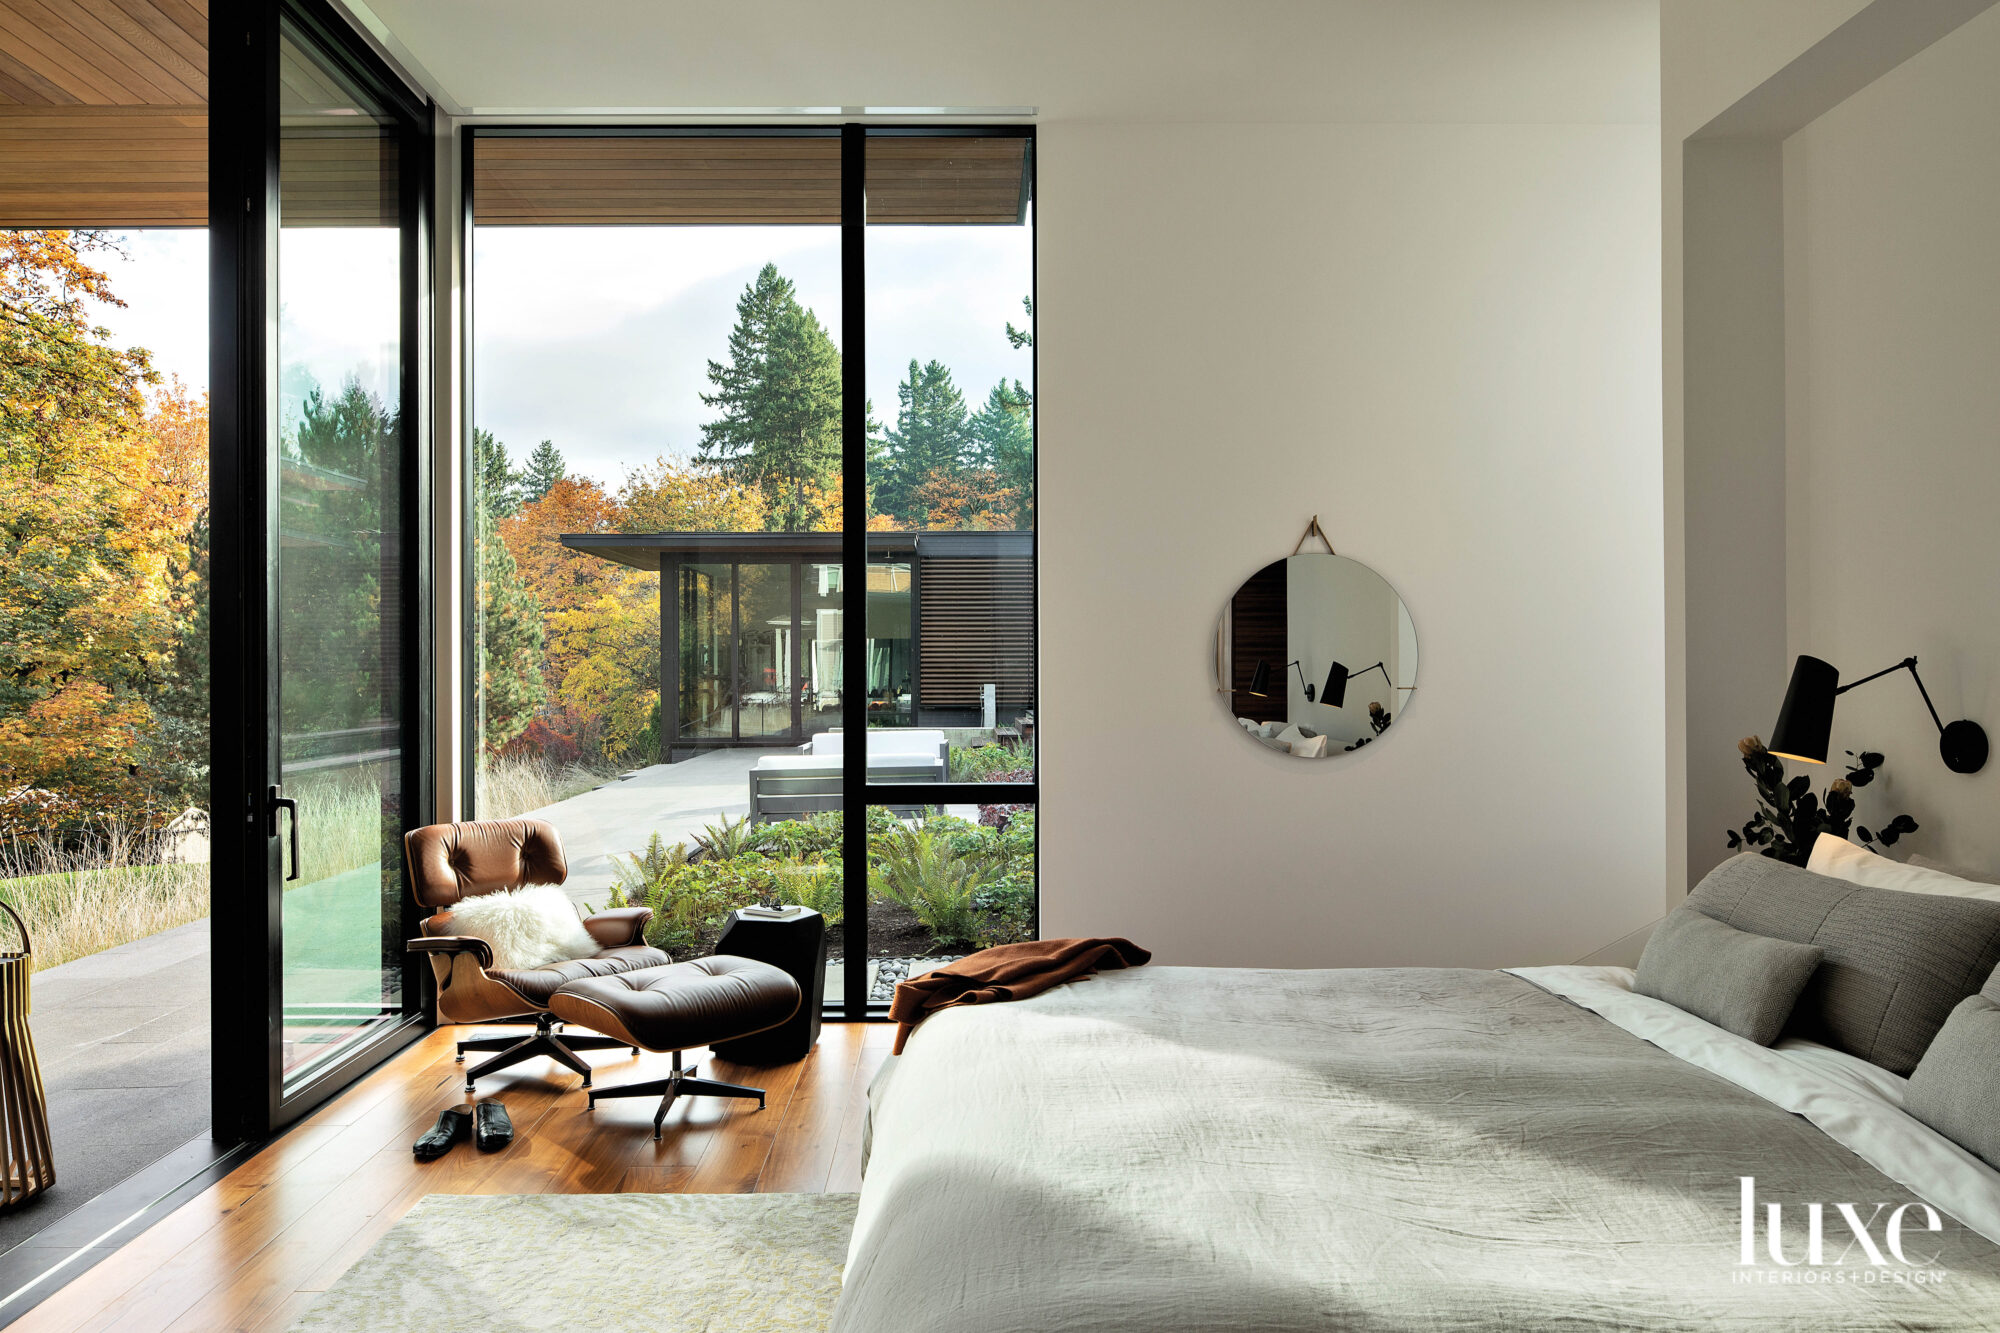 Bedroom with chair and bed and sliding doors